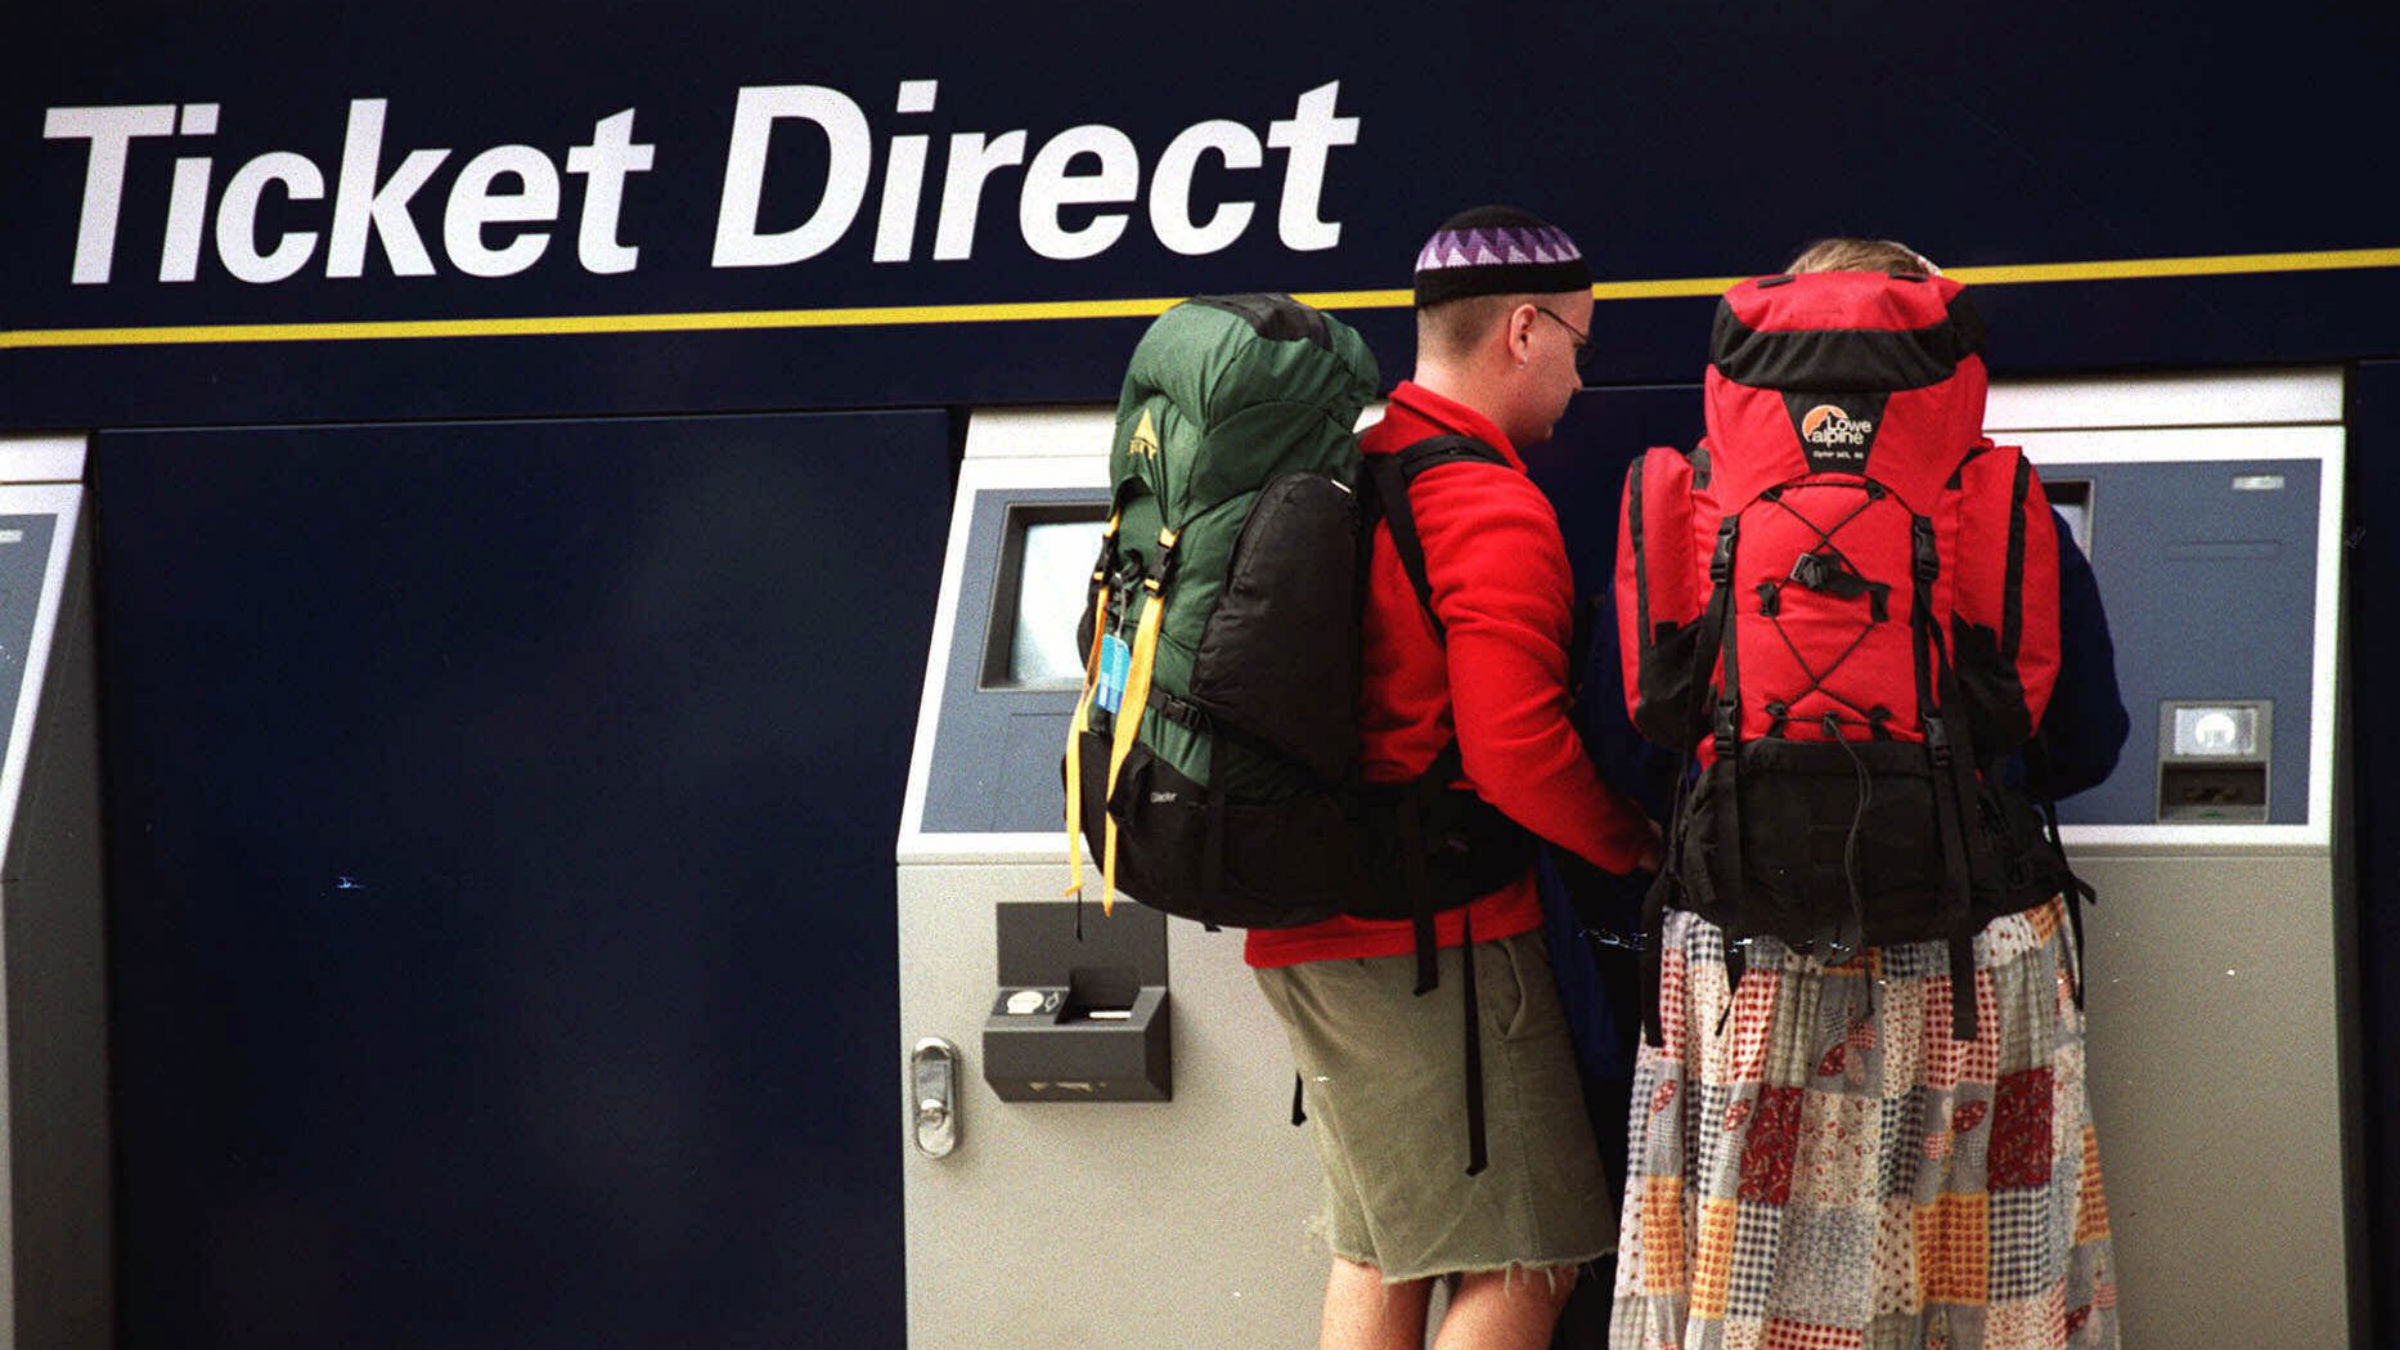 Backpackers buying travel tickets